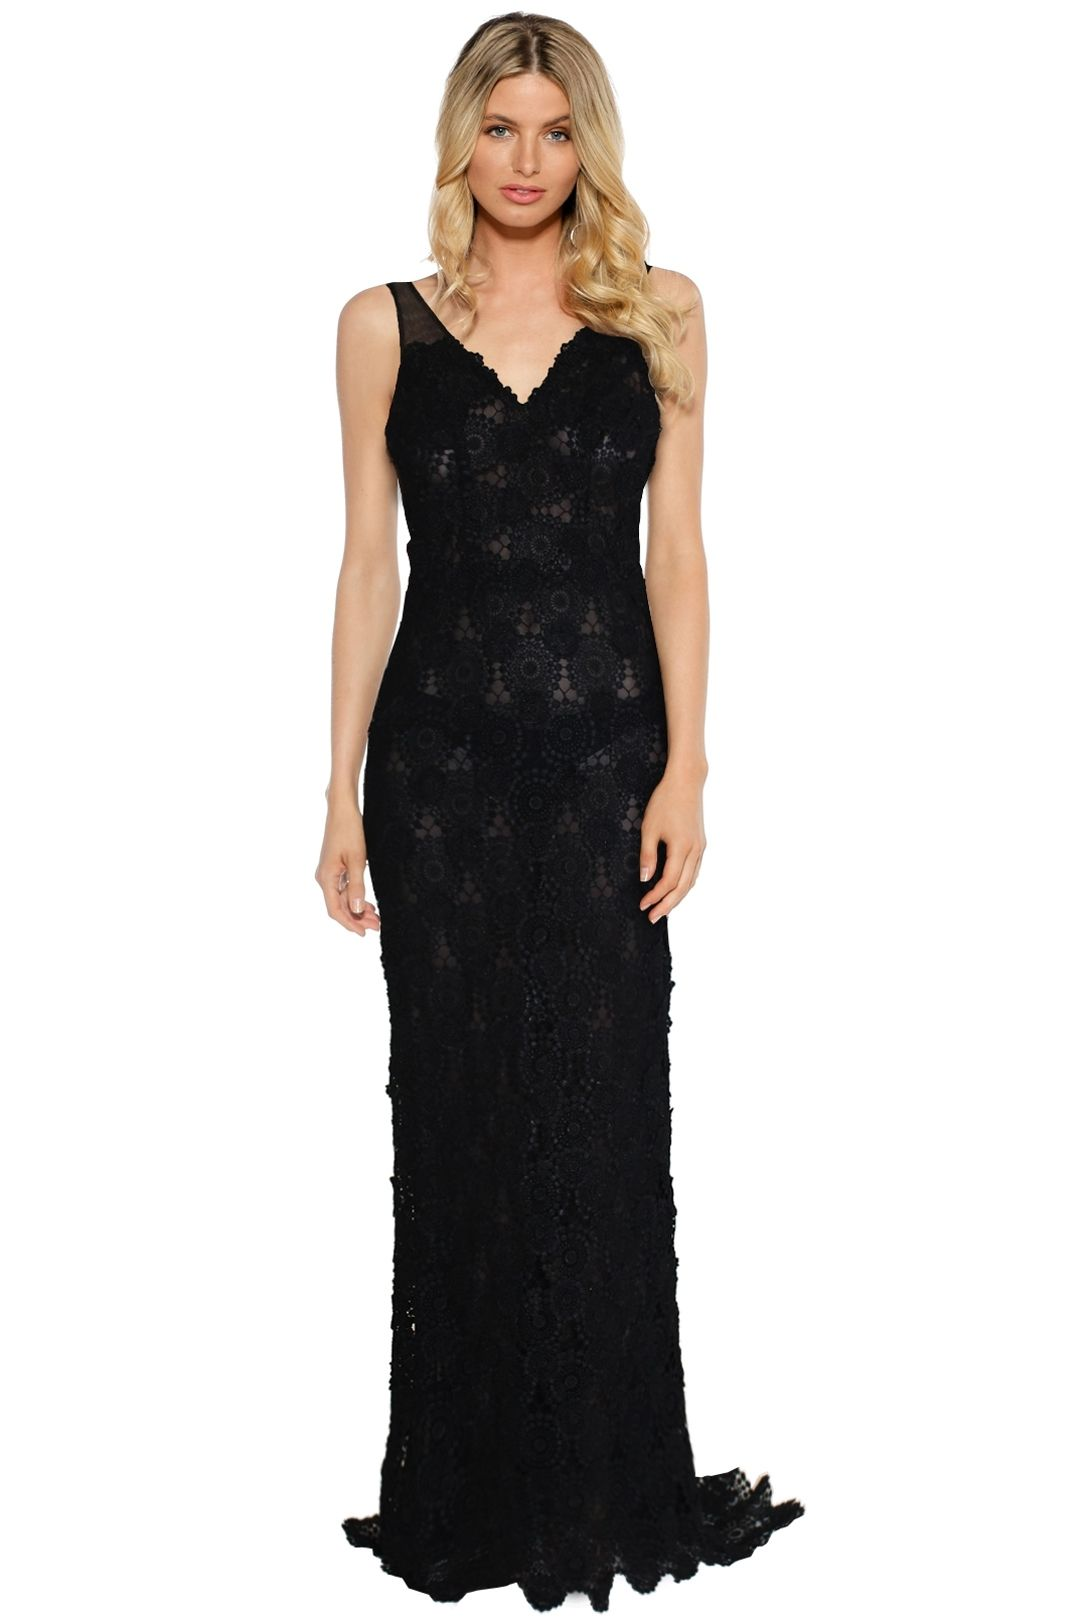 LUOM.O - Onyx Dress - Black Lace - Front